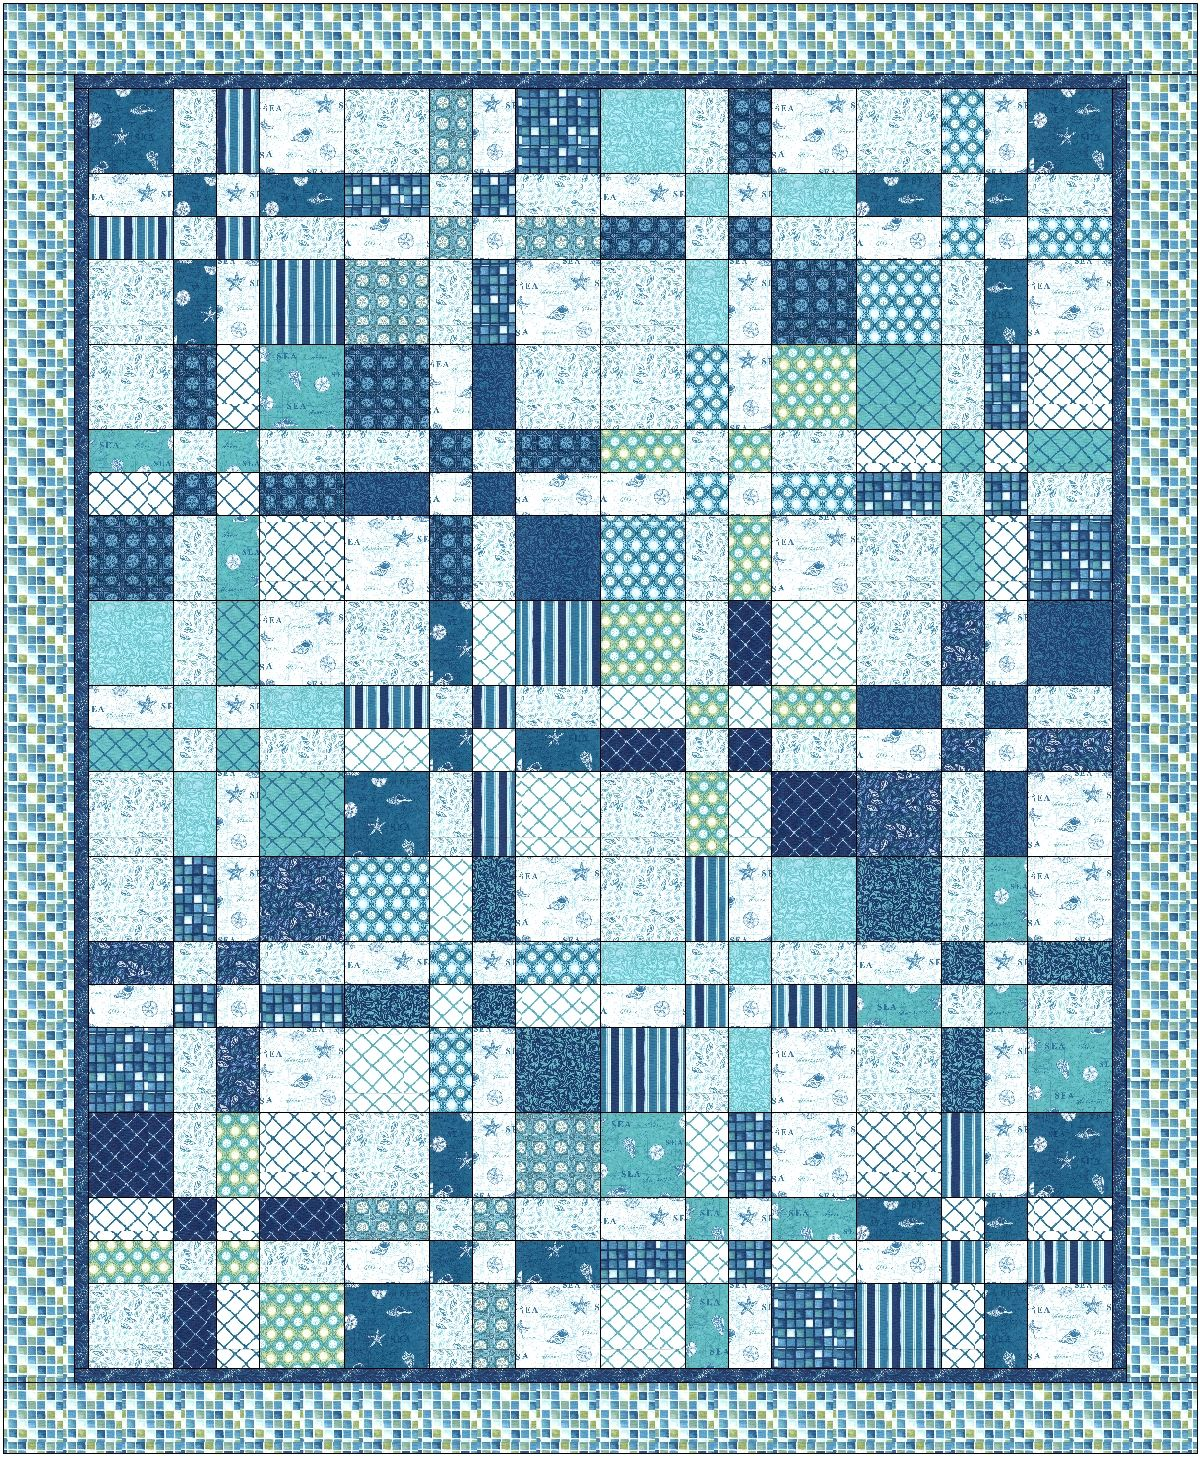 beach quilt - Google Search   Sewing and Quilting   Pinterest ... : quilt shop search - Adamdwight.com